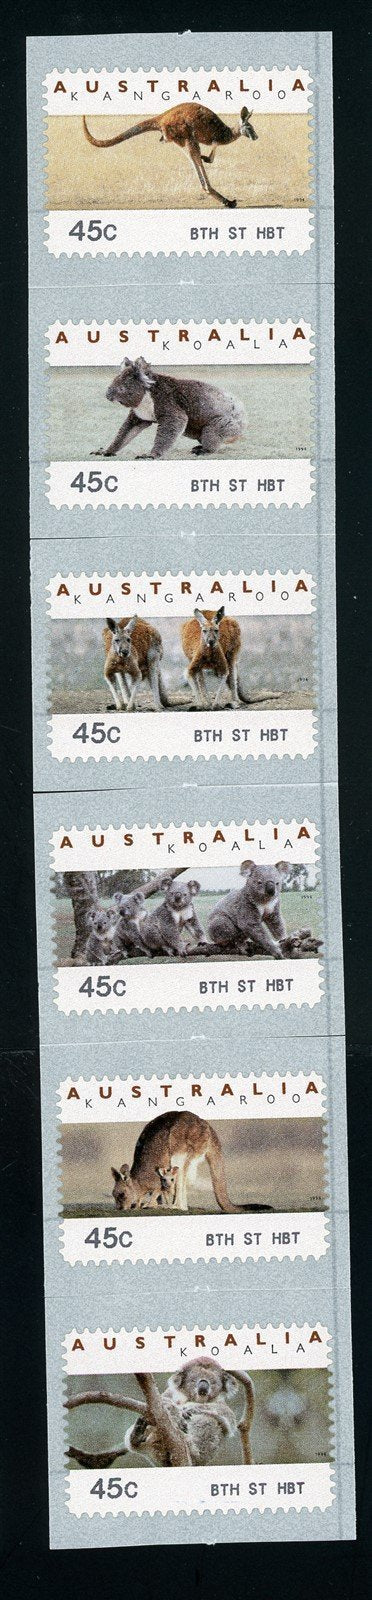 Australia Scott #1295a-11 SA COIL STAMP Animals FAUNA 8th St HBT CV$8+